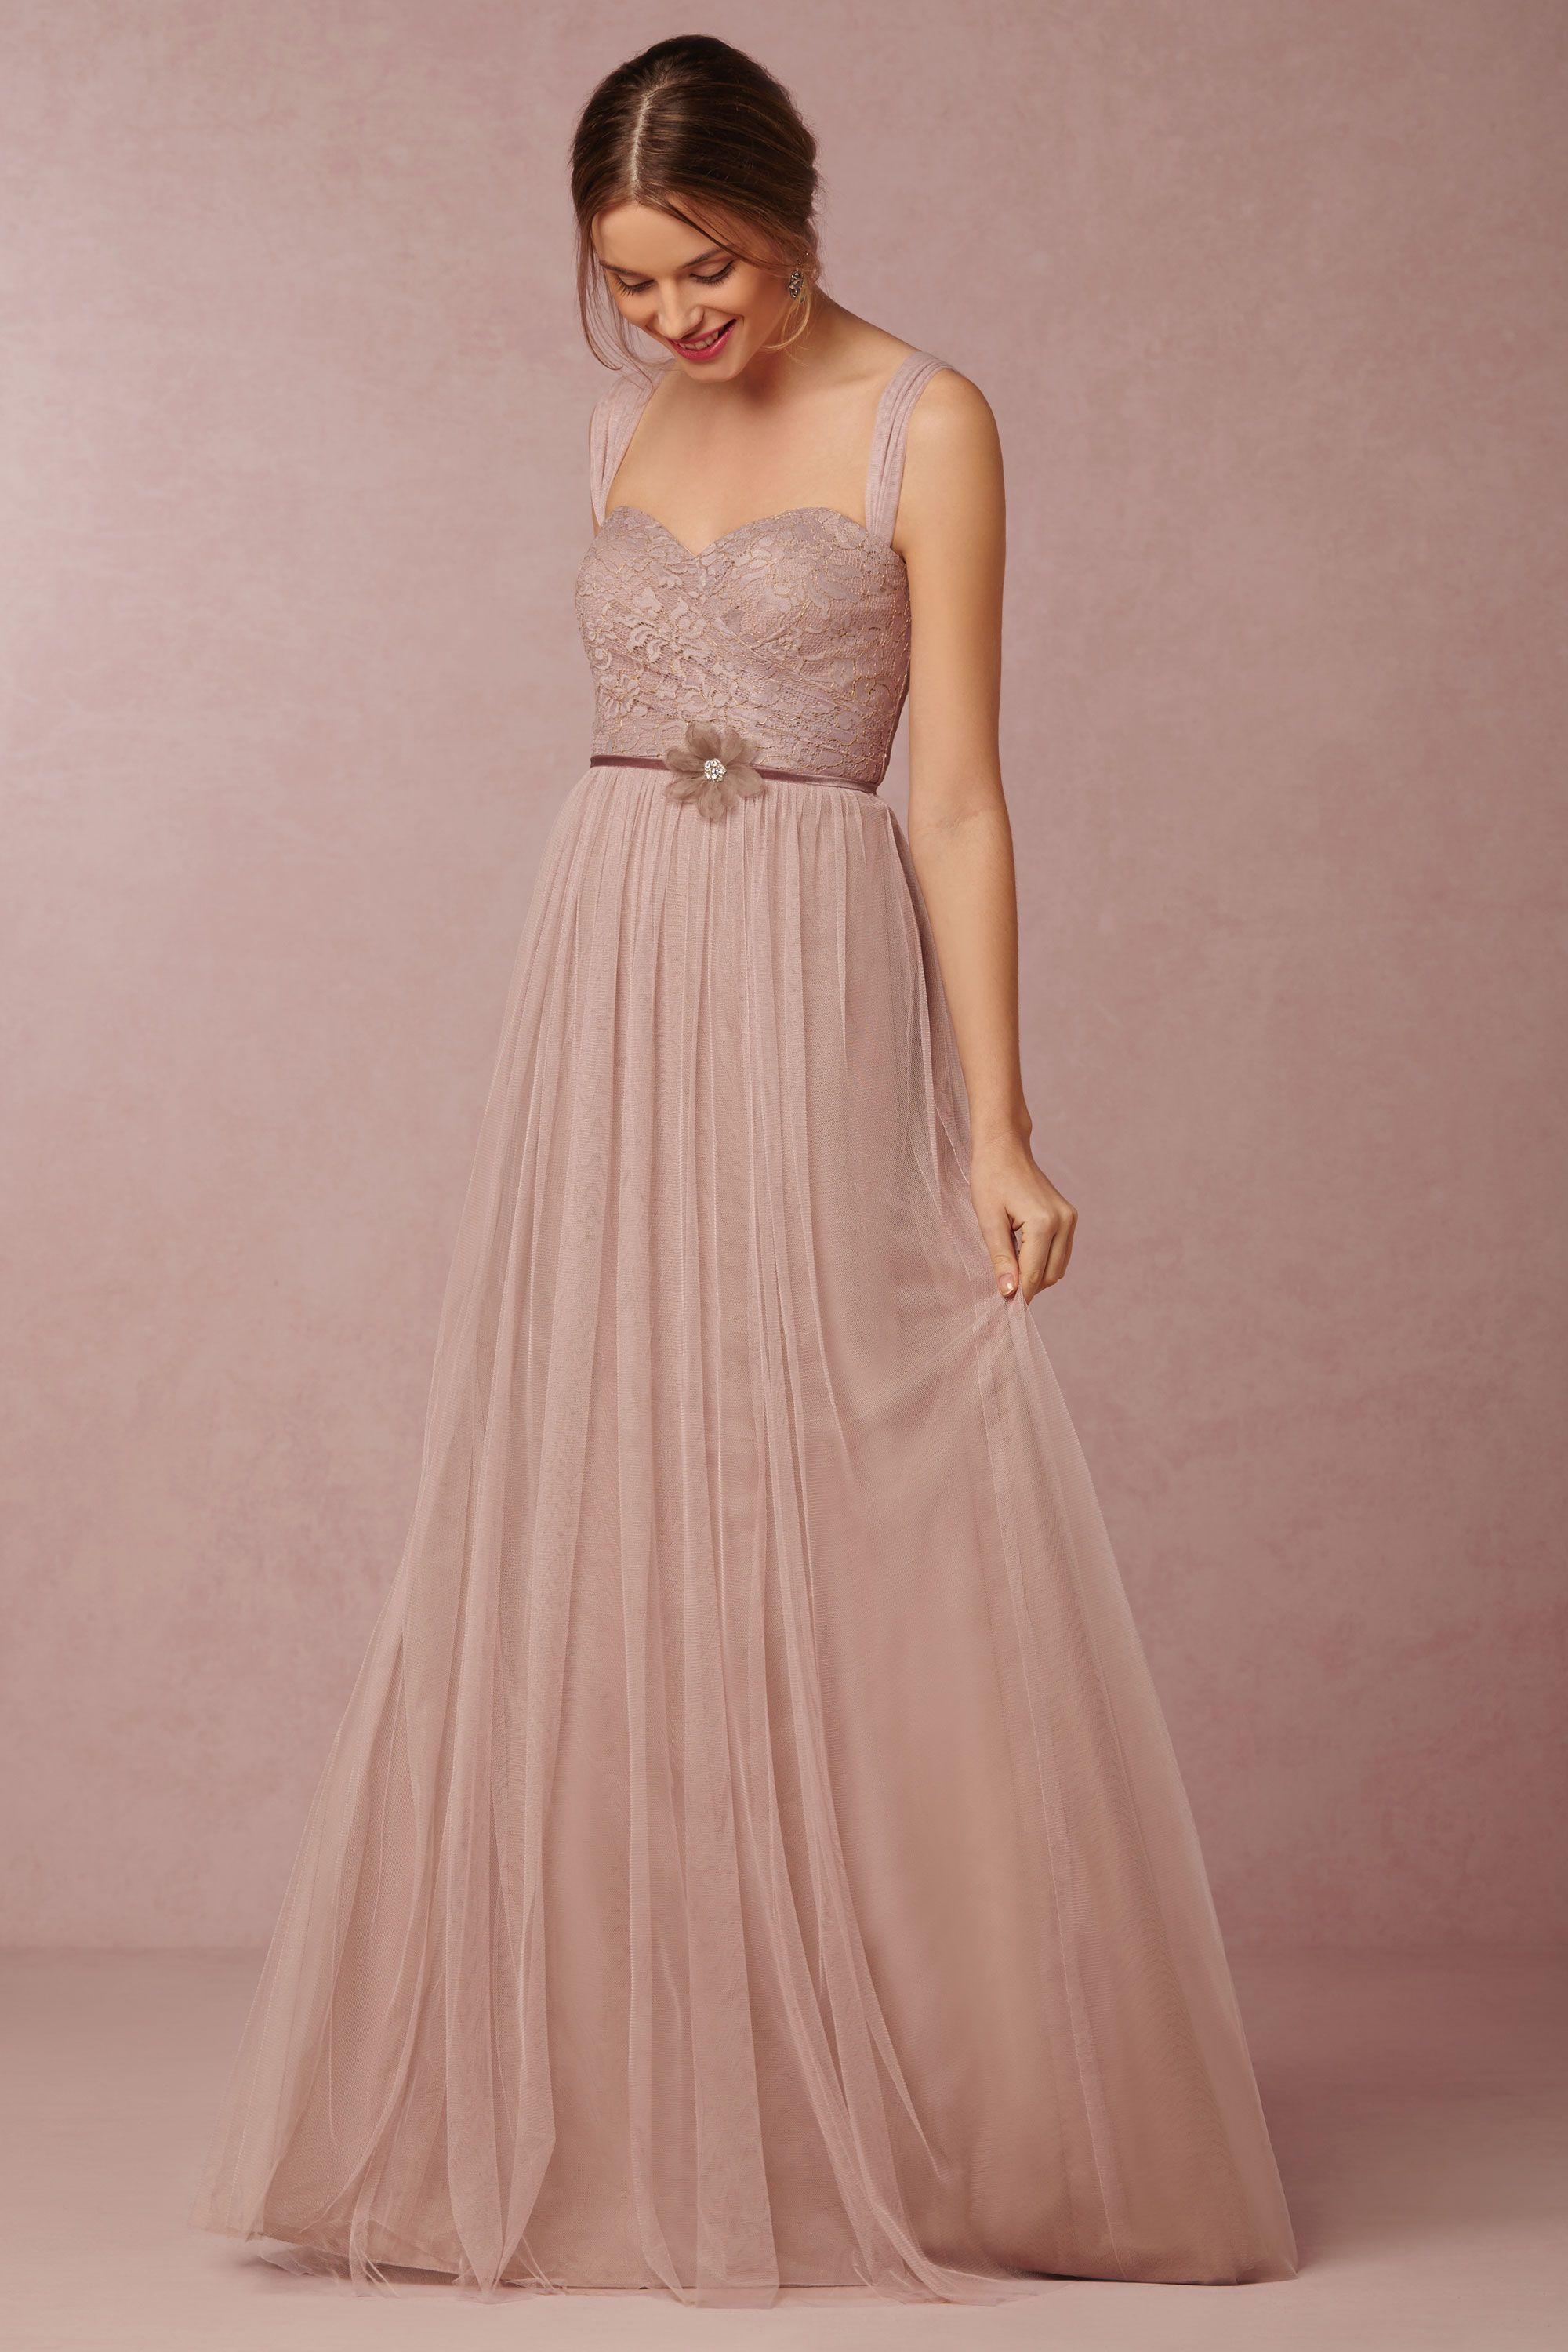 Shop the look wedding ideas with bhldn gowns favorite color and